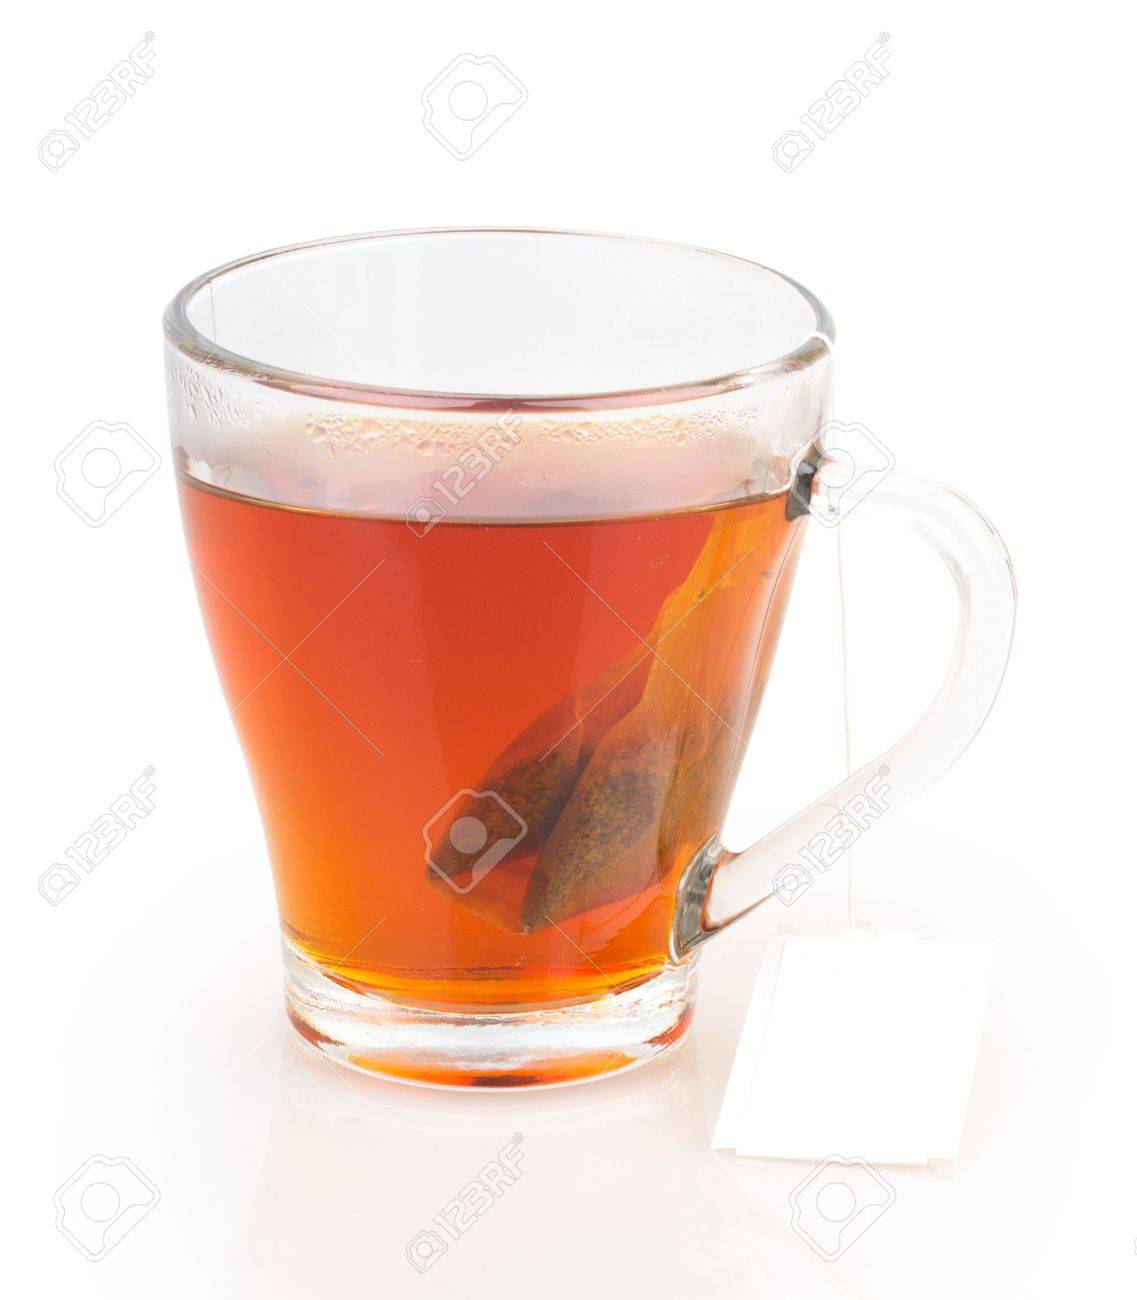 cup of tea with tea bag isolated on white background Standard-Bild - 18620913